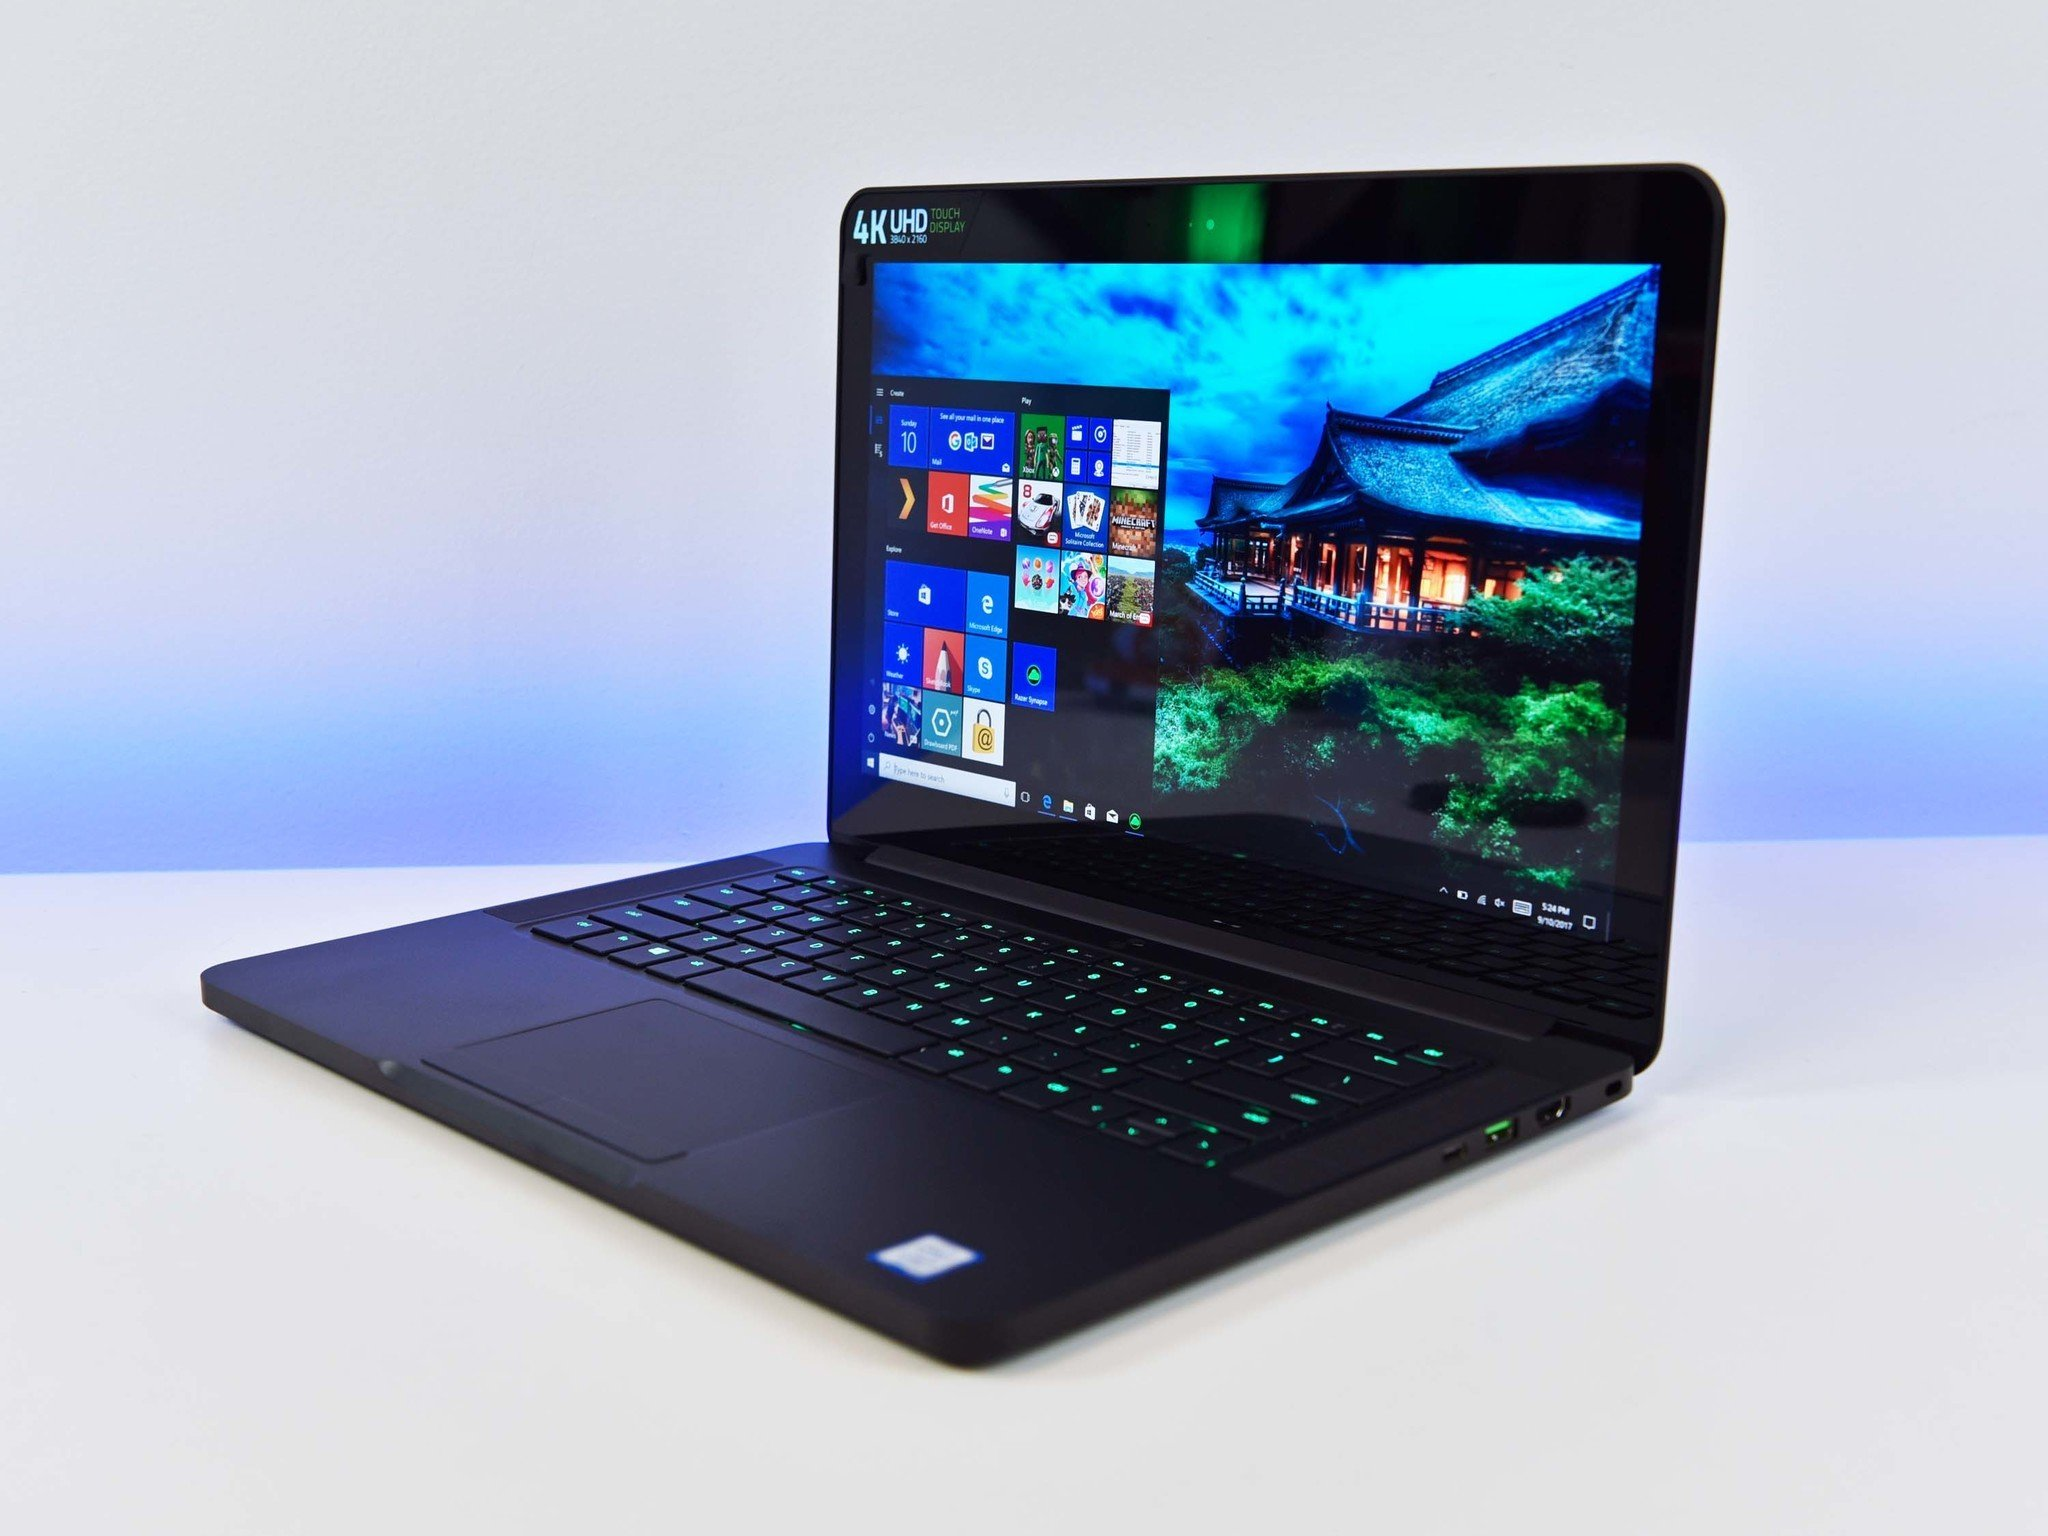 How To Connect To Ethernet On A Laptop Without A Dedicated